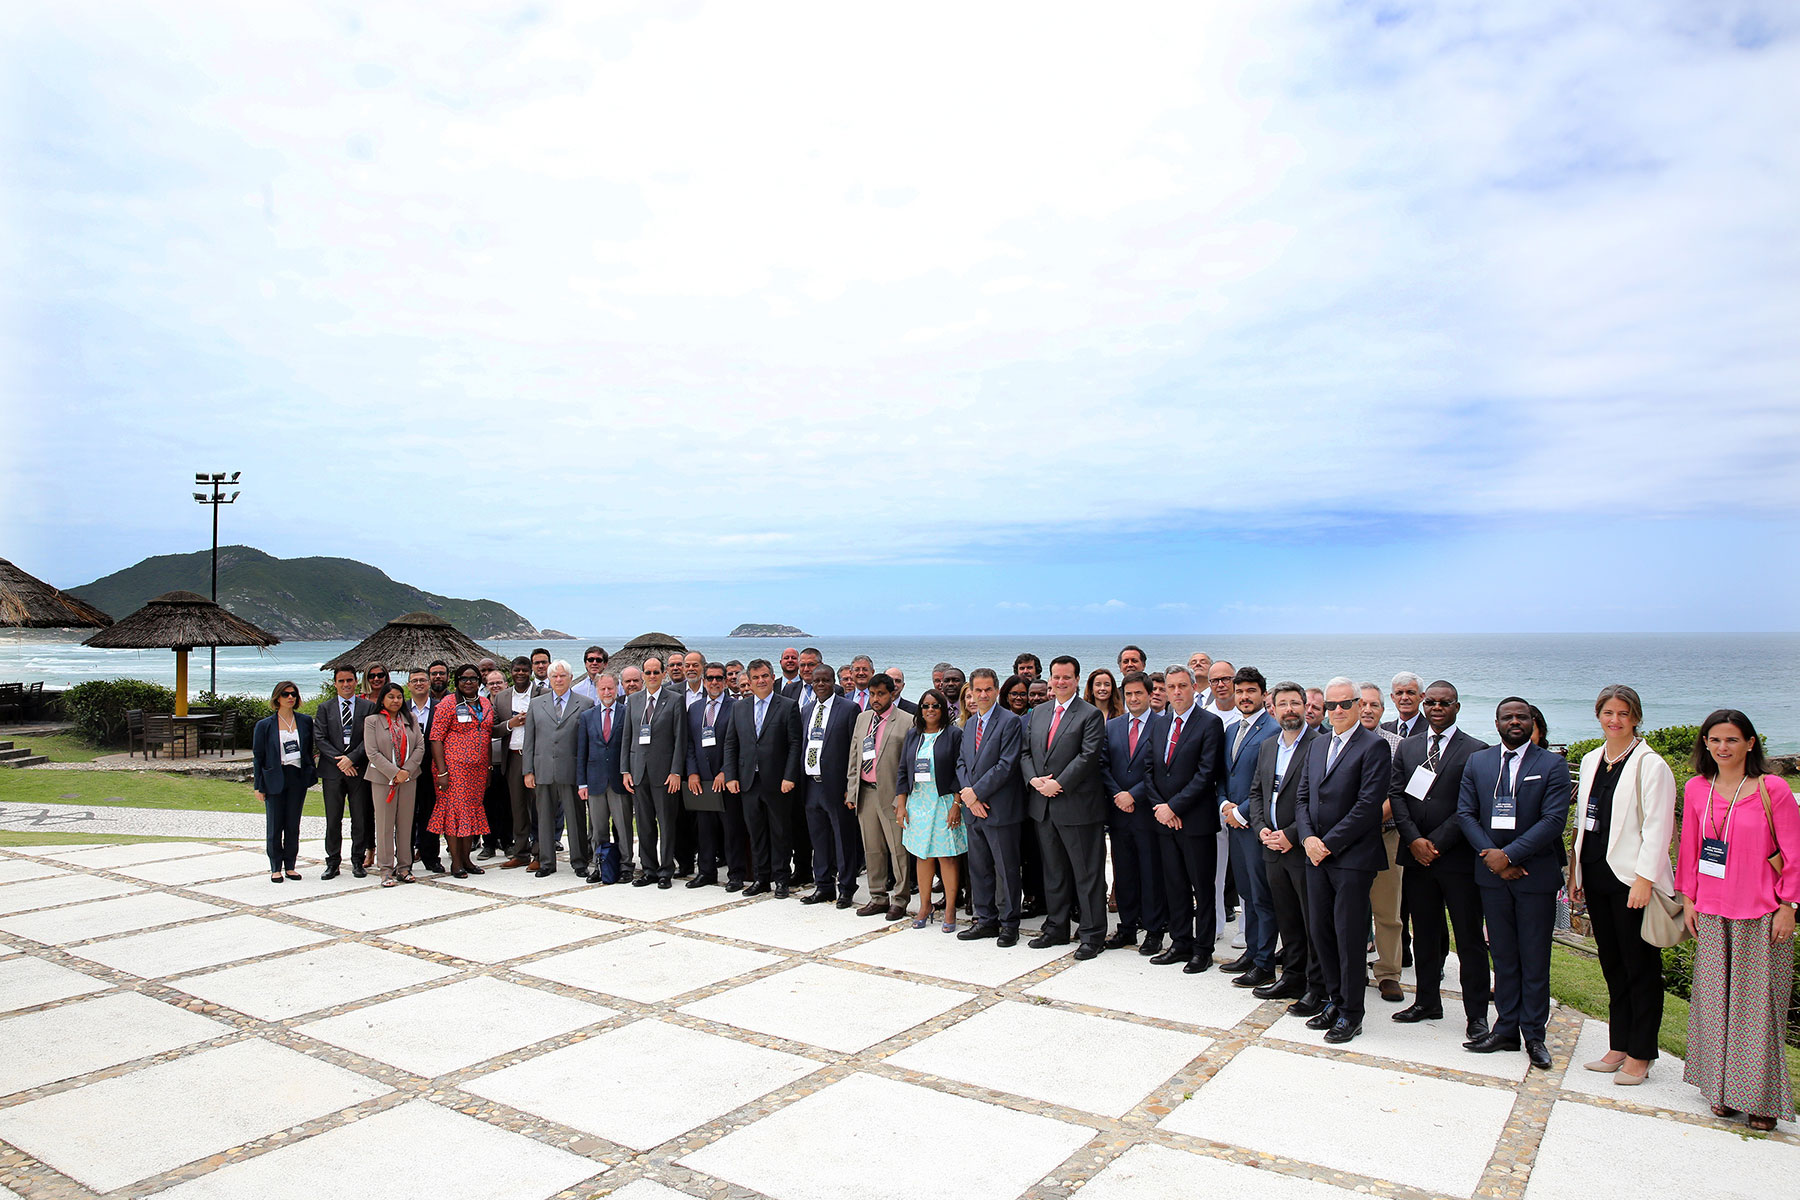 Group of attendees from the Second High-Level Industry-Science-Government Dialogue on Atlantic Interactions stand on the beach in Florianopolis, Brazil